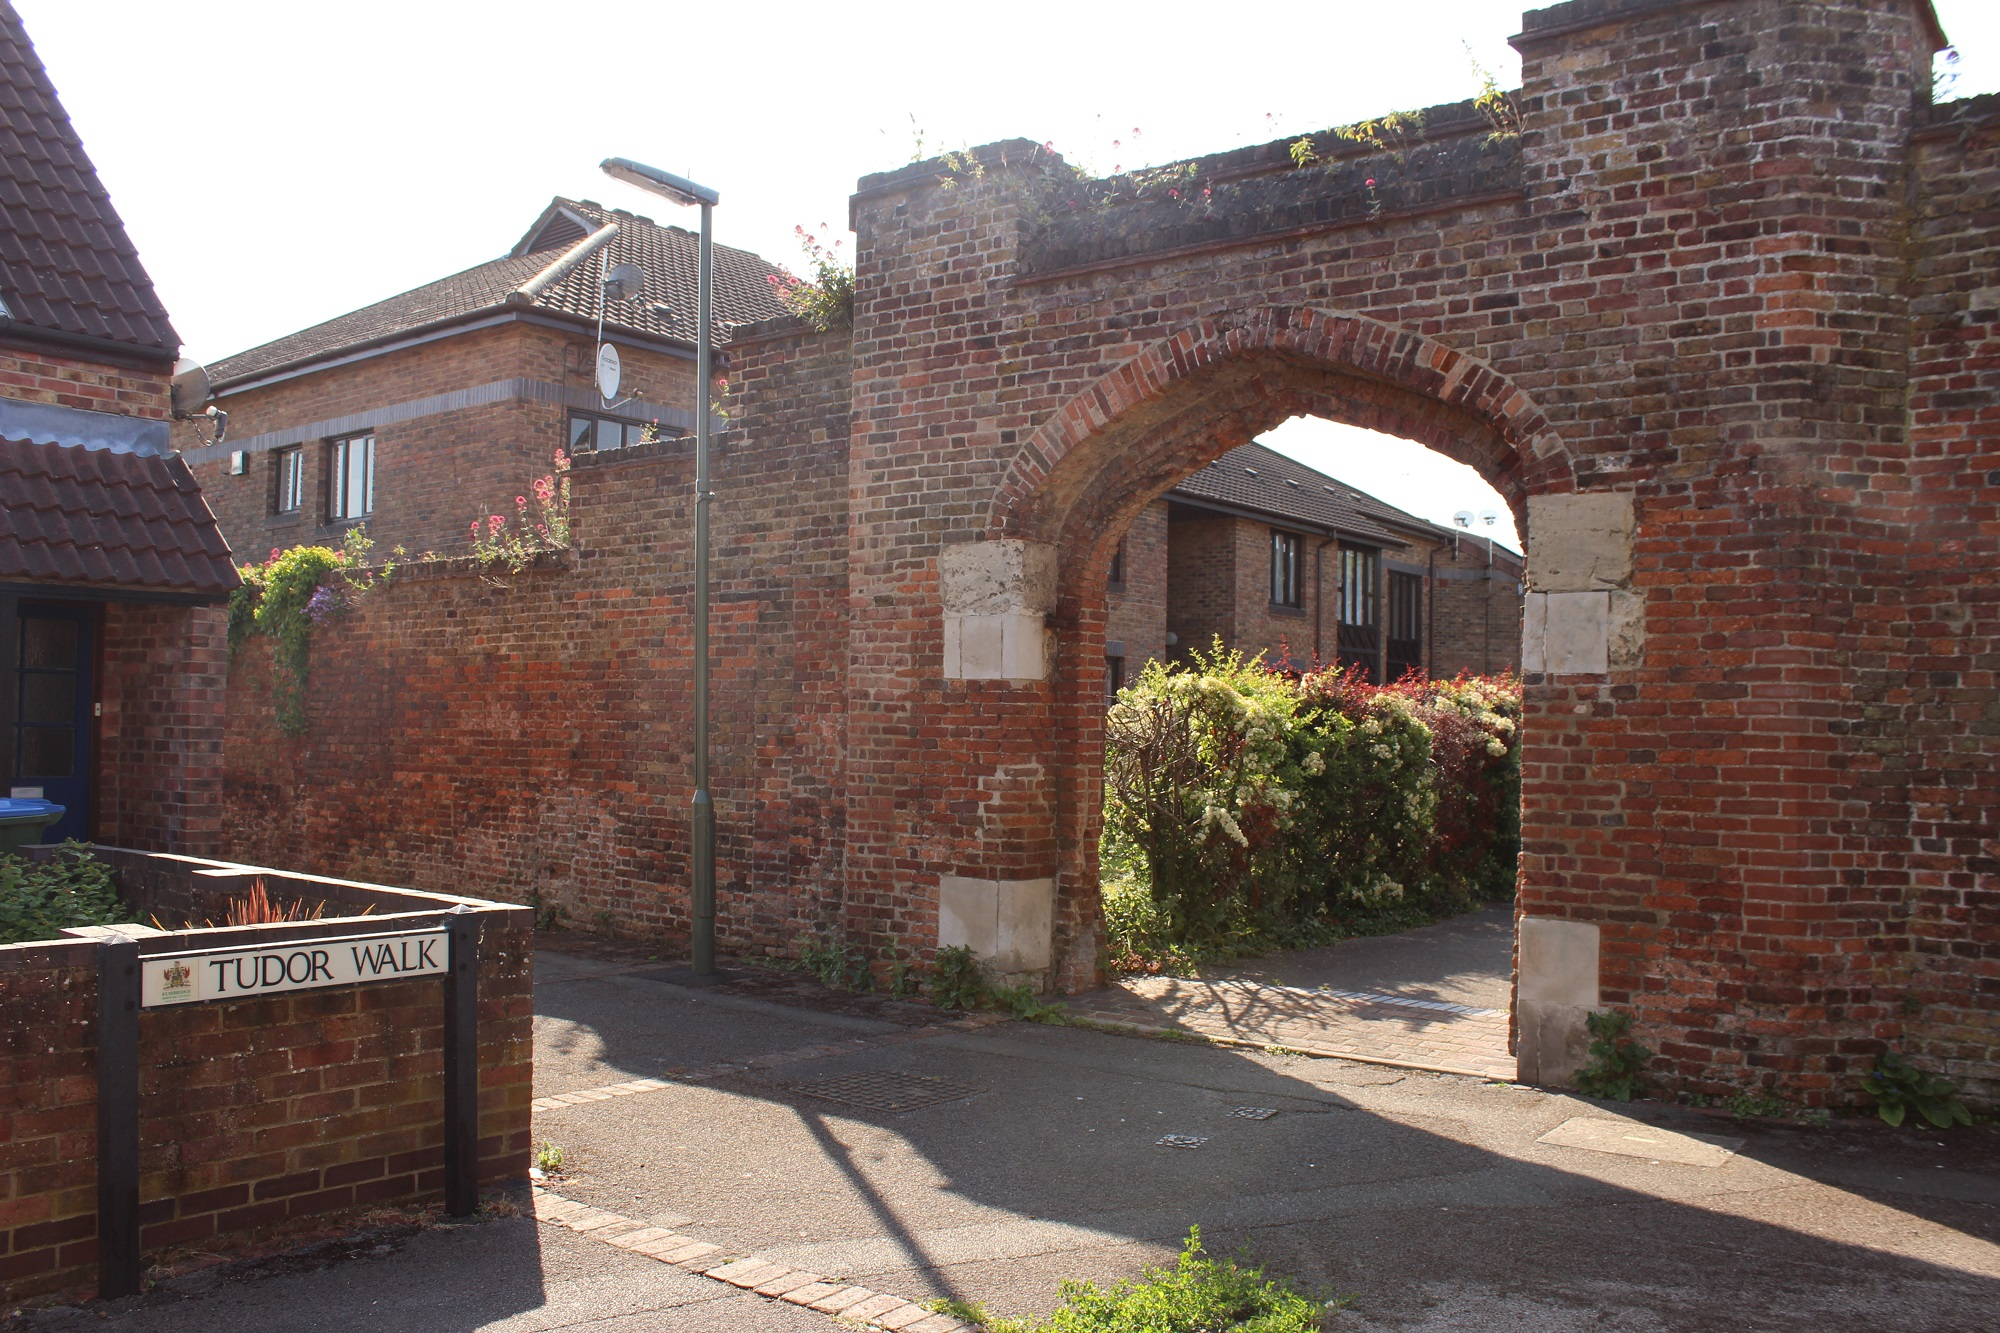 The only remaining Tudor archway of the original Oatlands Palace building, now standing in Tudor Walk.